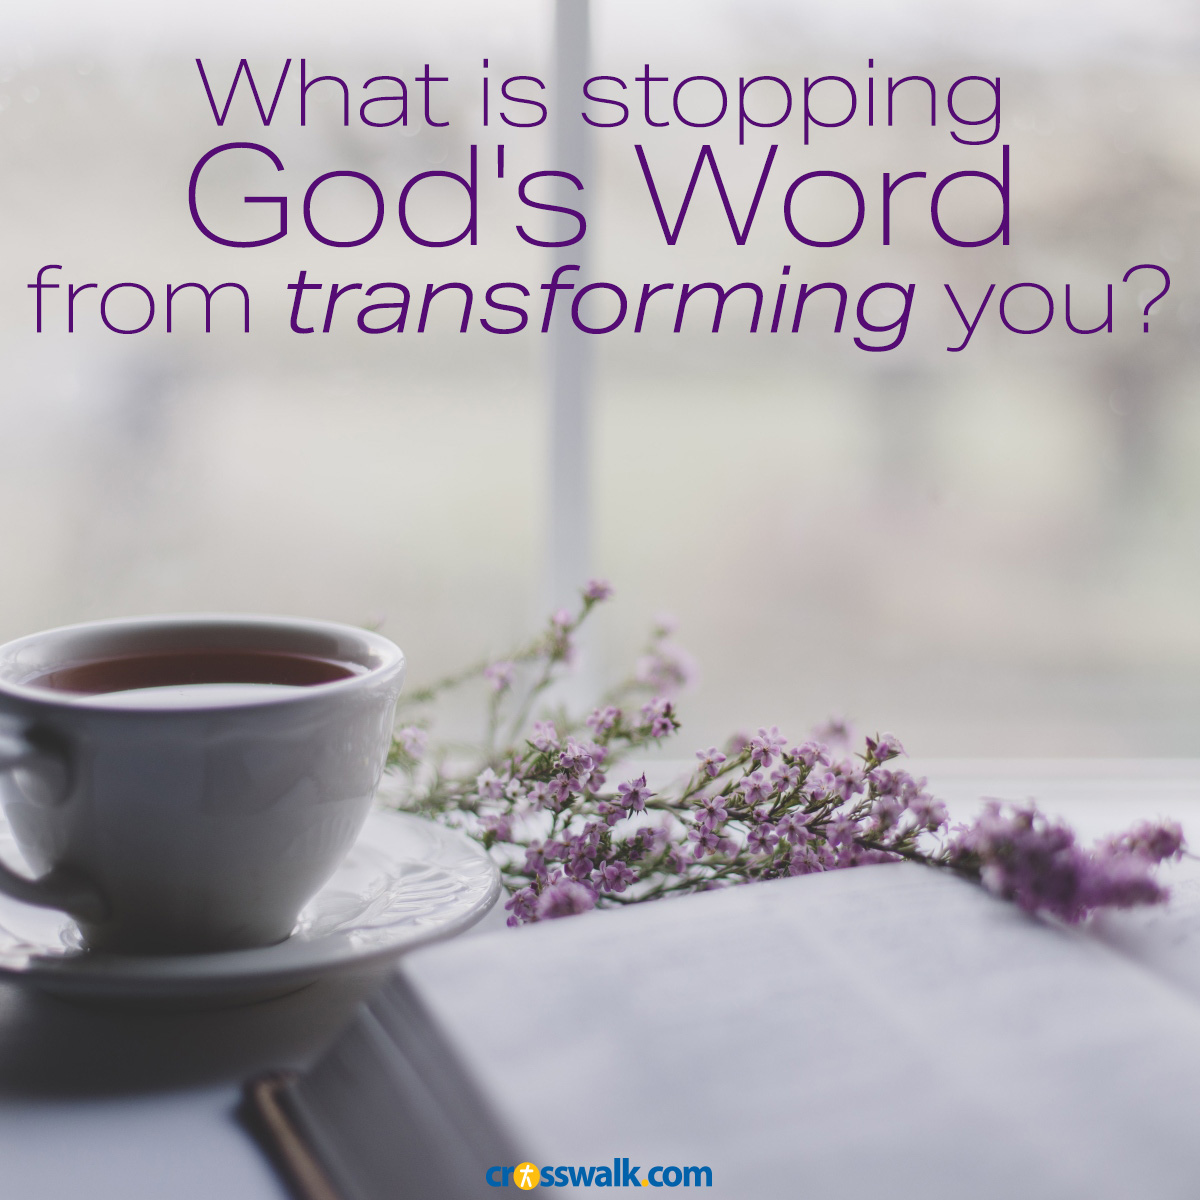 Gods word transforms you